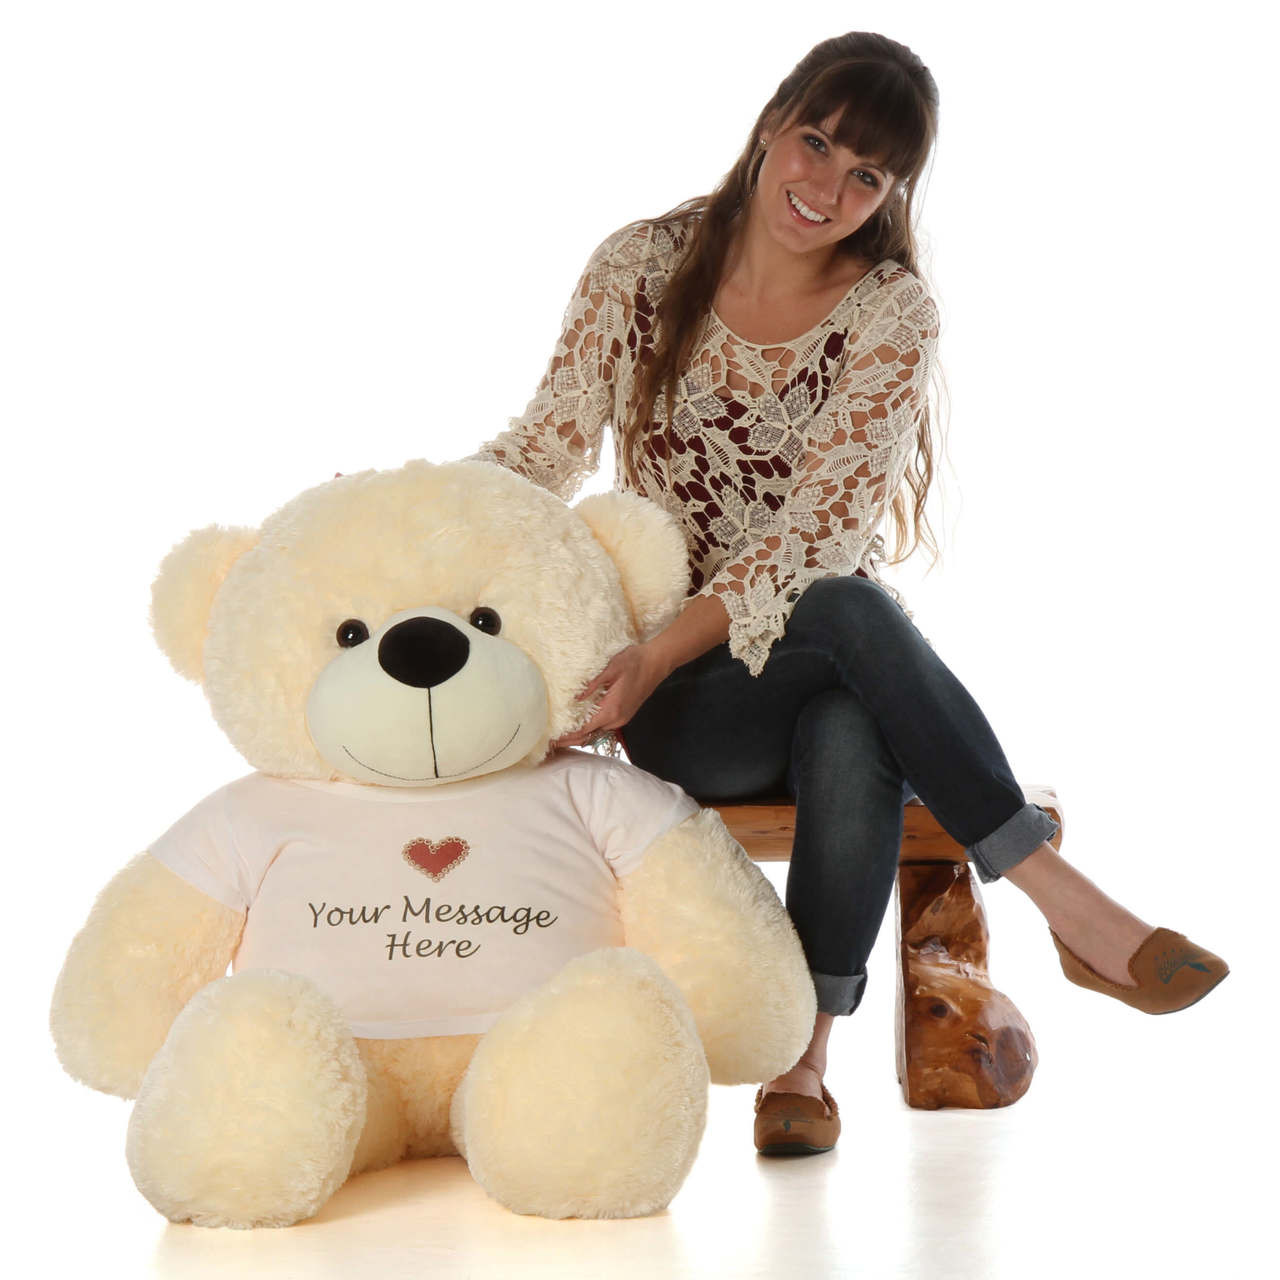 4 foot Teddy bear with adorable heart stamp t-shirt that you can cusomize